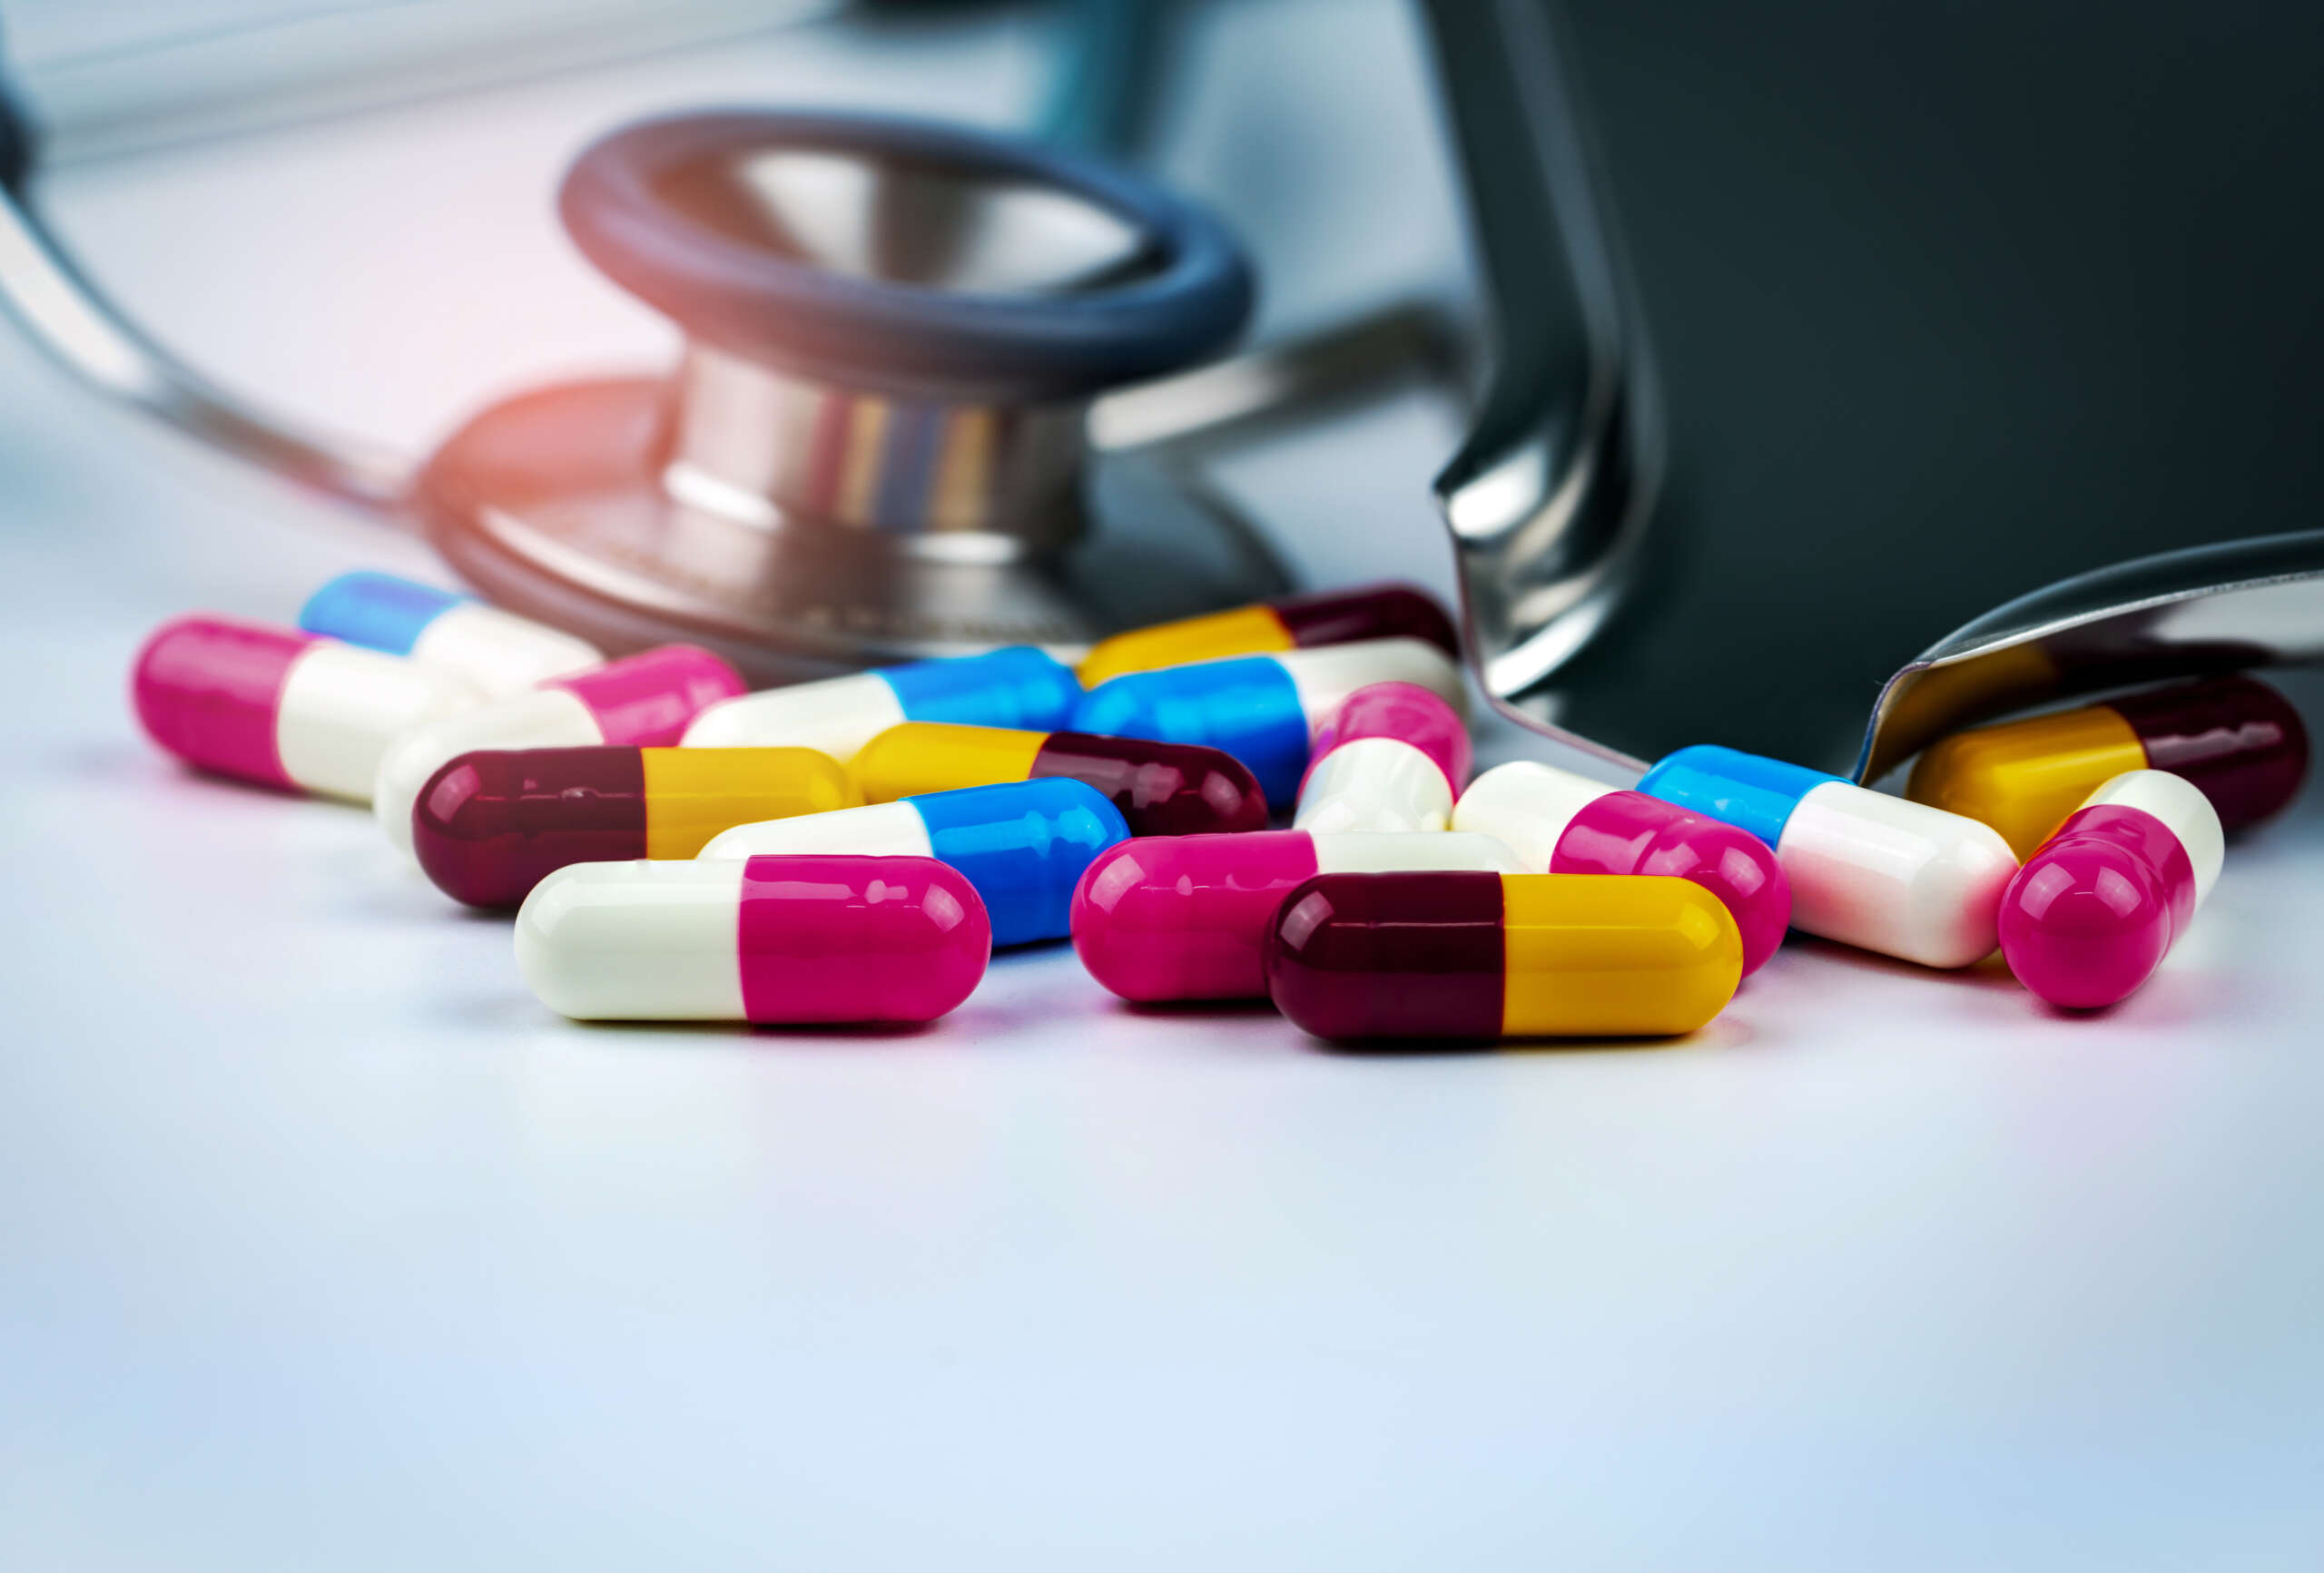 Stethoscope with pile of colorful antibiotic capsule pills on white table with drug tray. Antimicrobial drug resistance and overuse. Medical equipment for doctor. Global healthcare. Pharmaceuticals.